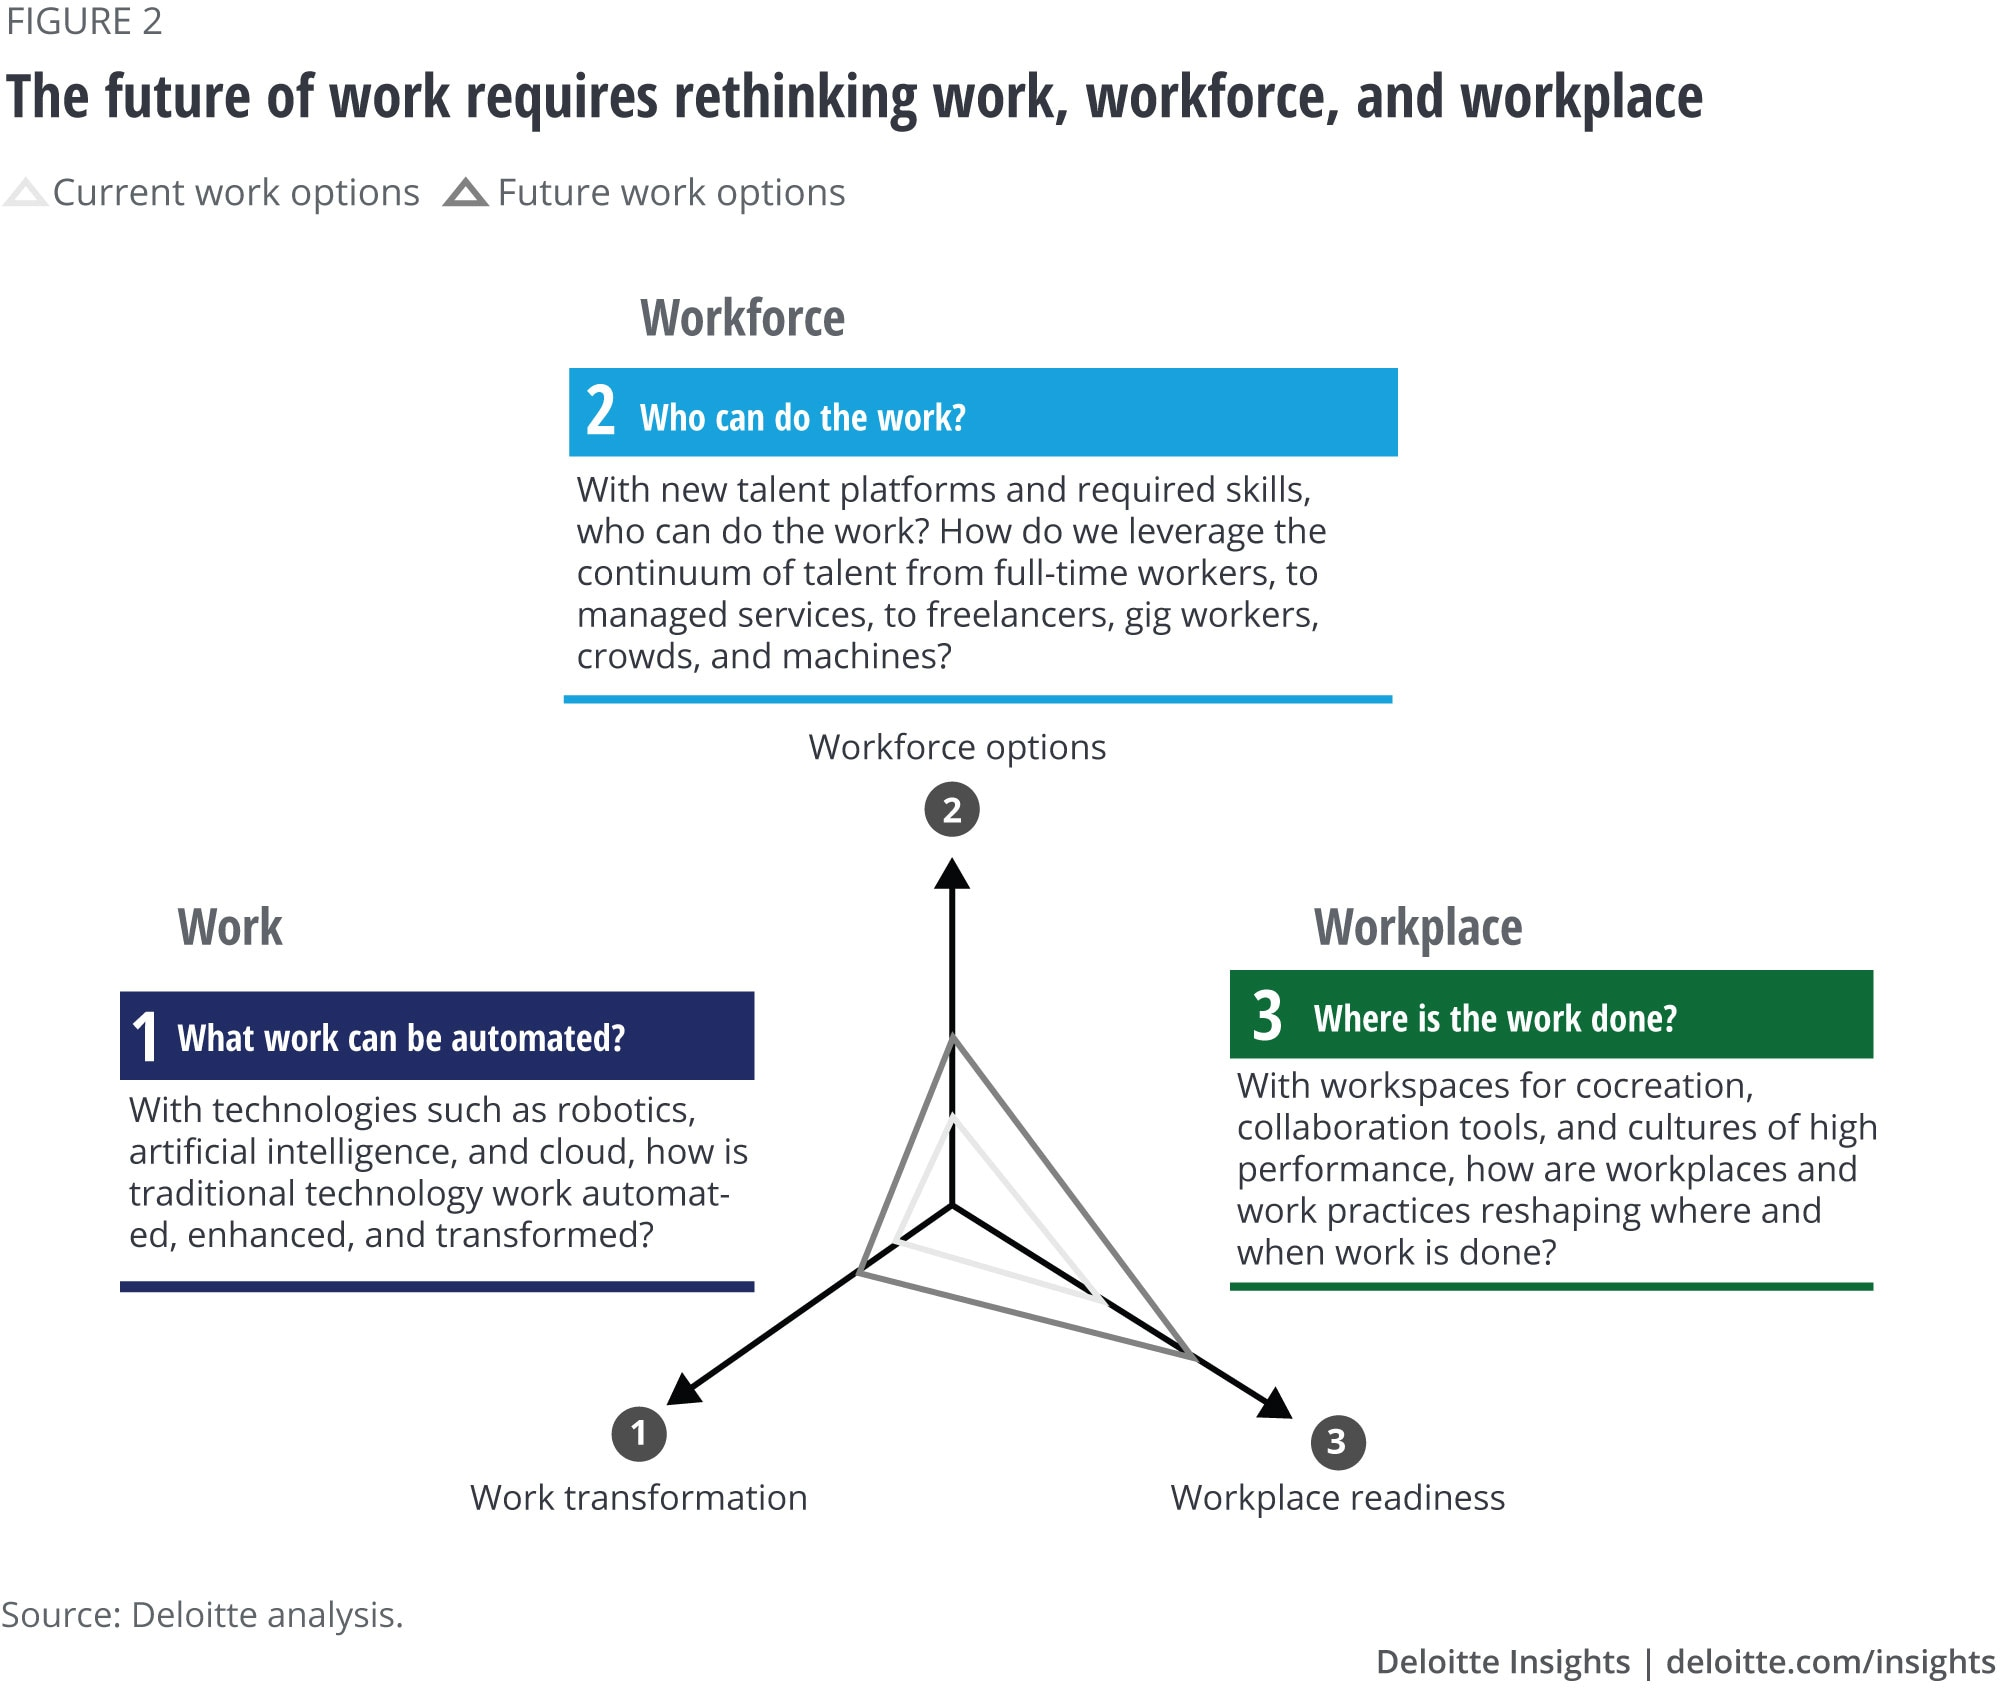 The future of work requires rethinking work, workforce, and workplace